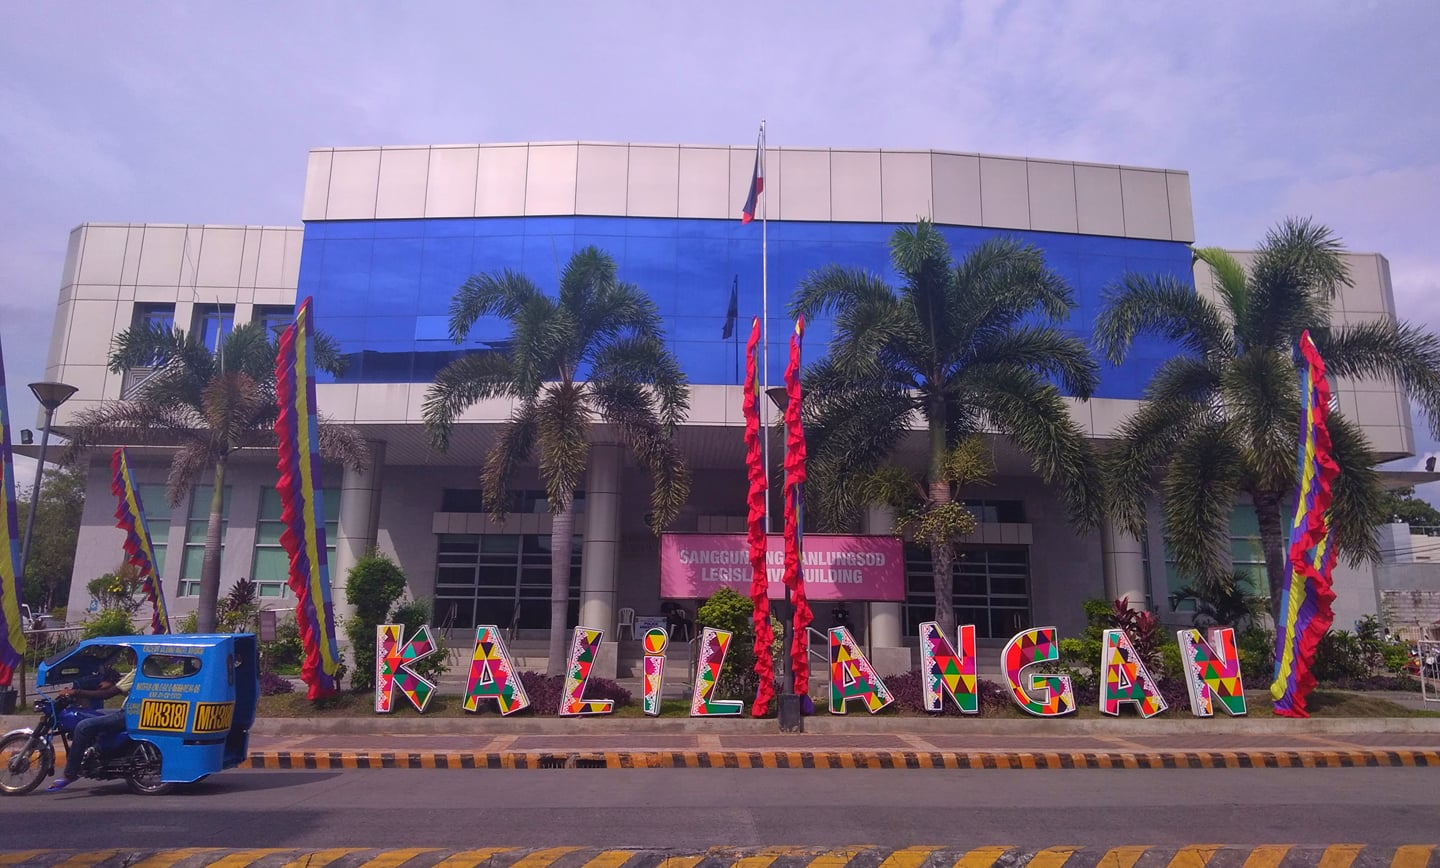 It's Kalilangan Festival 2018 in Gensan